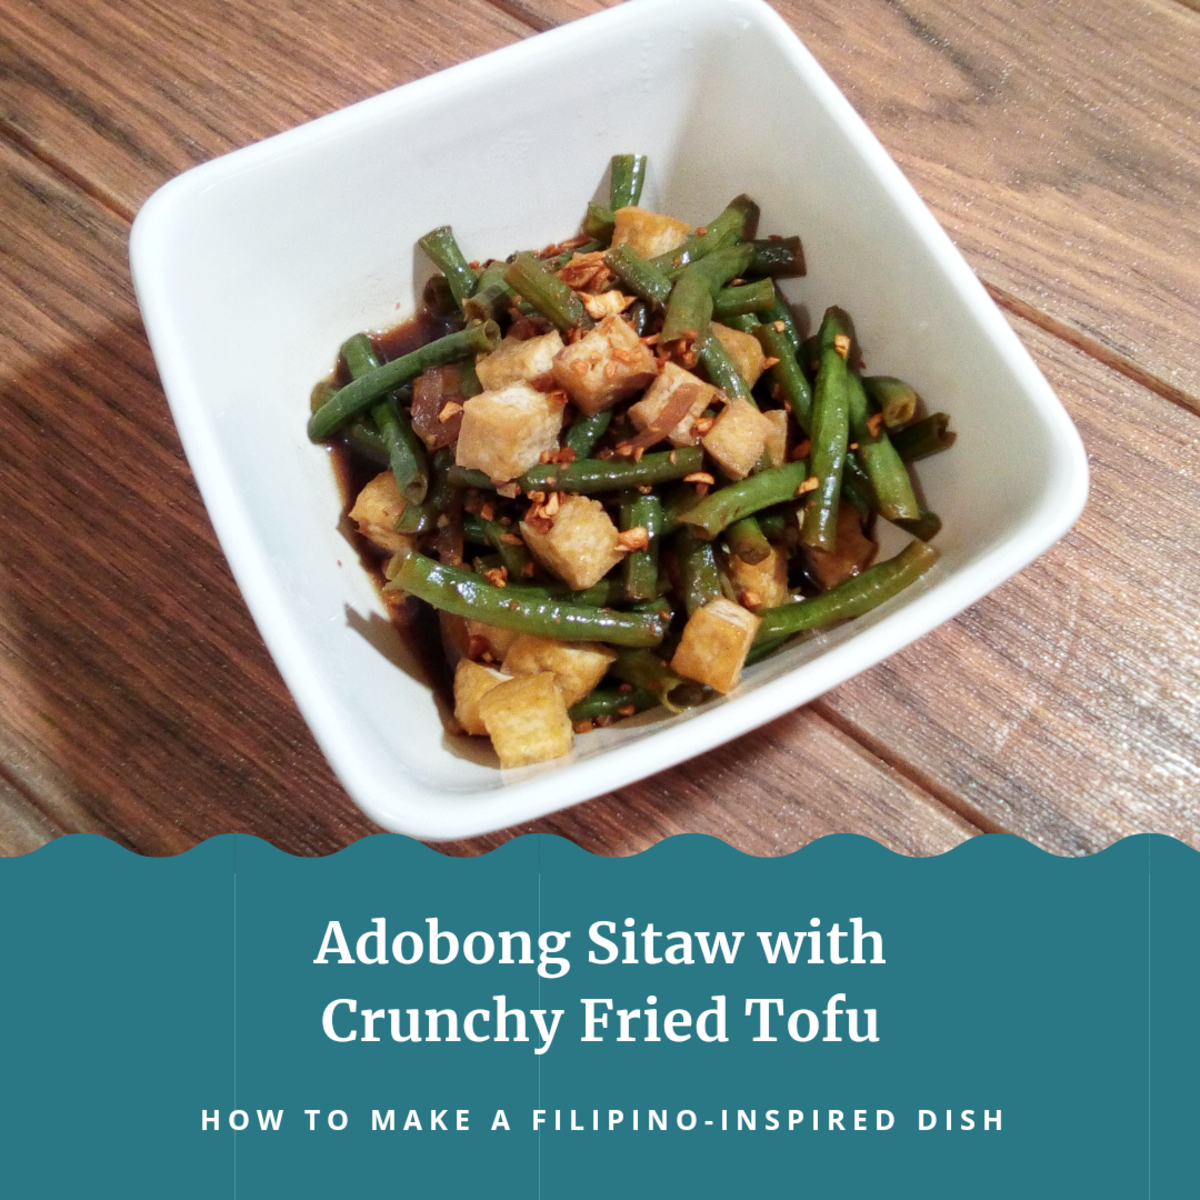 Adobong Sitaw With Crunchy Fried Tofu (Filipino-Inspired)